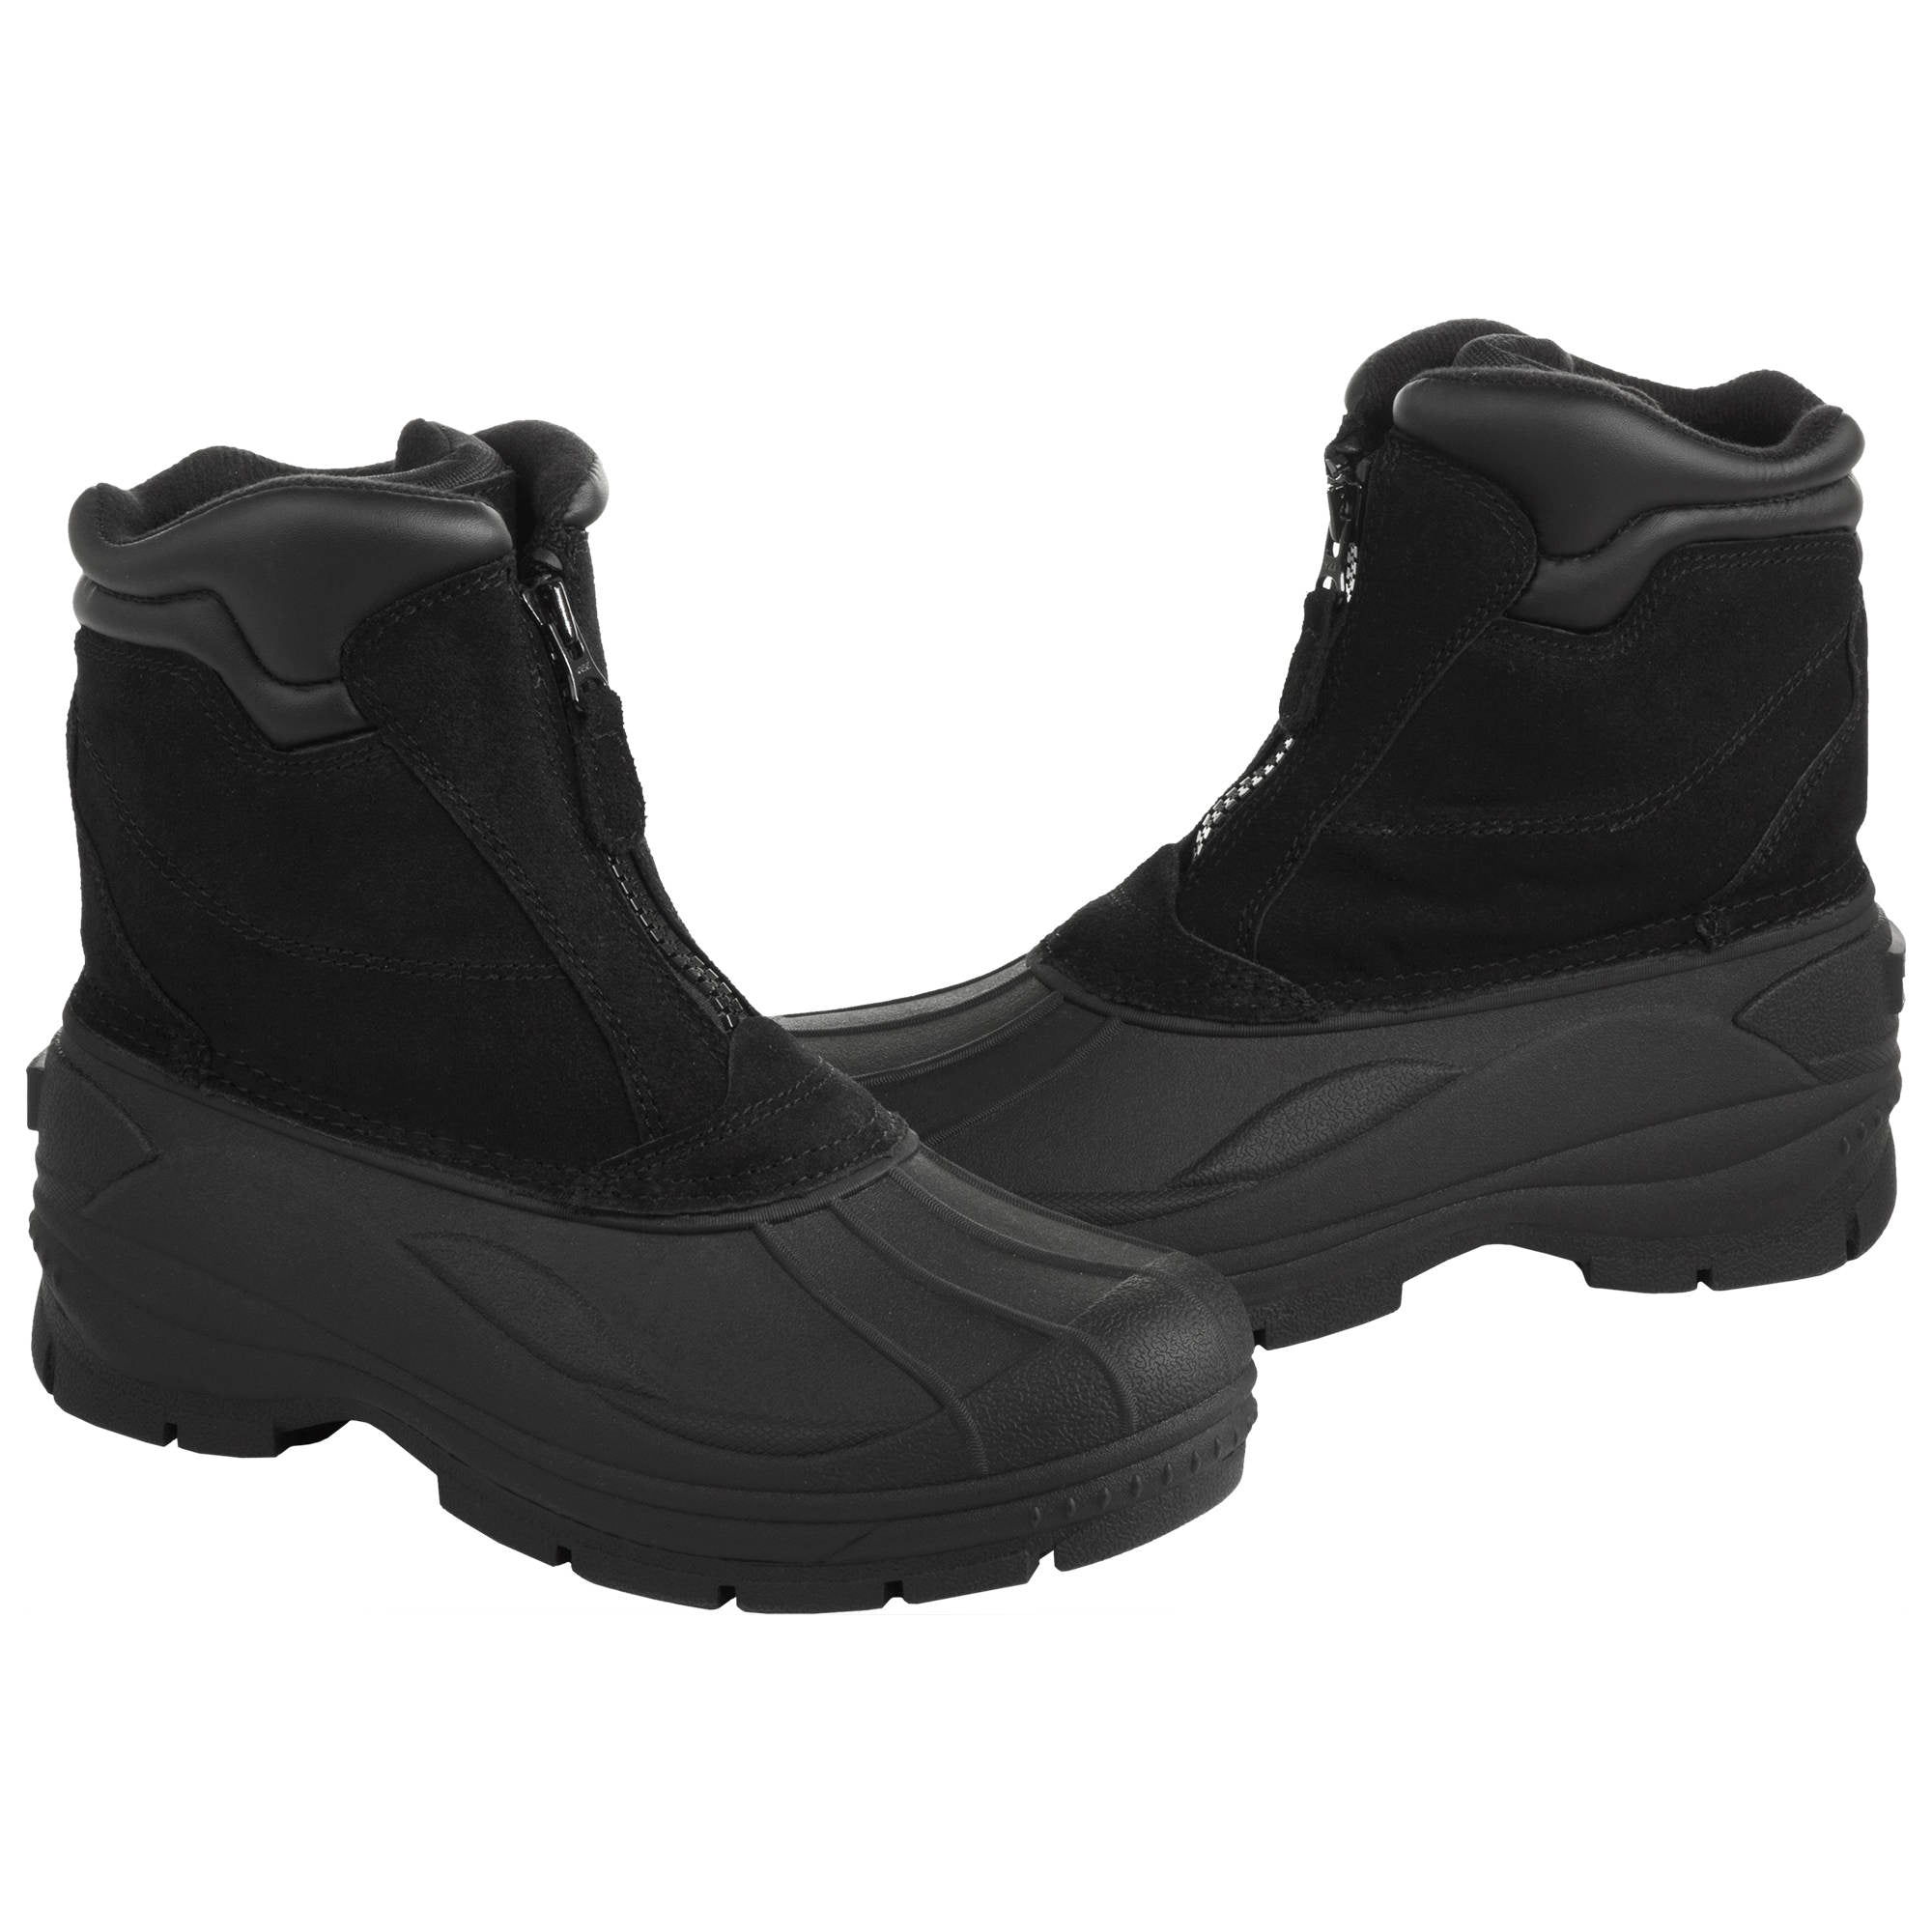 'Totes' Men's Glacier Zip Insulated Boots - Black